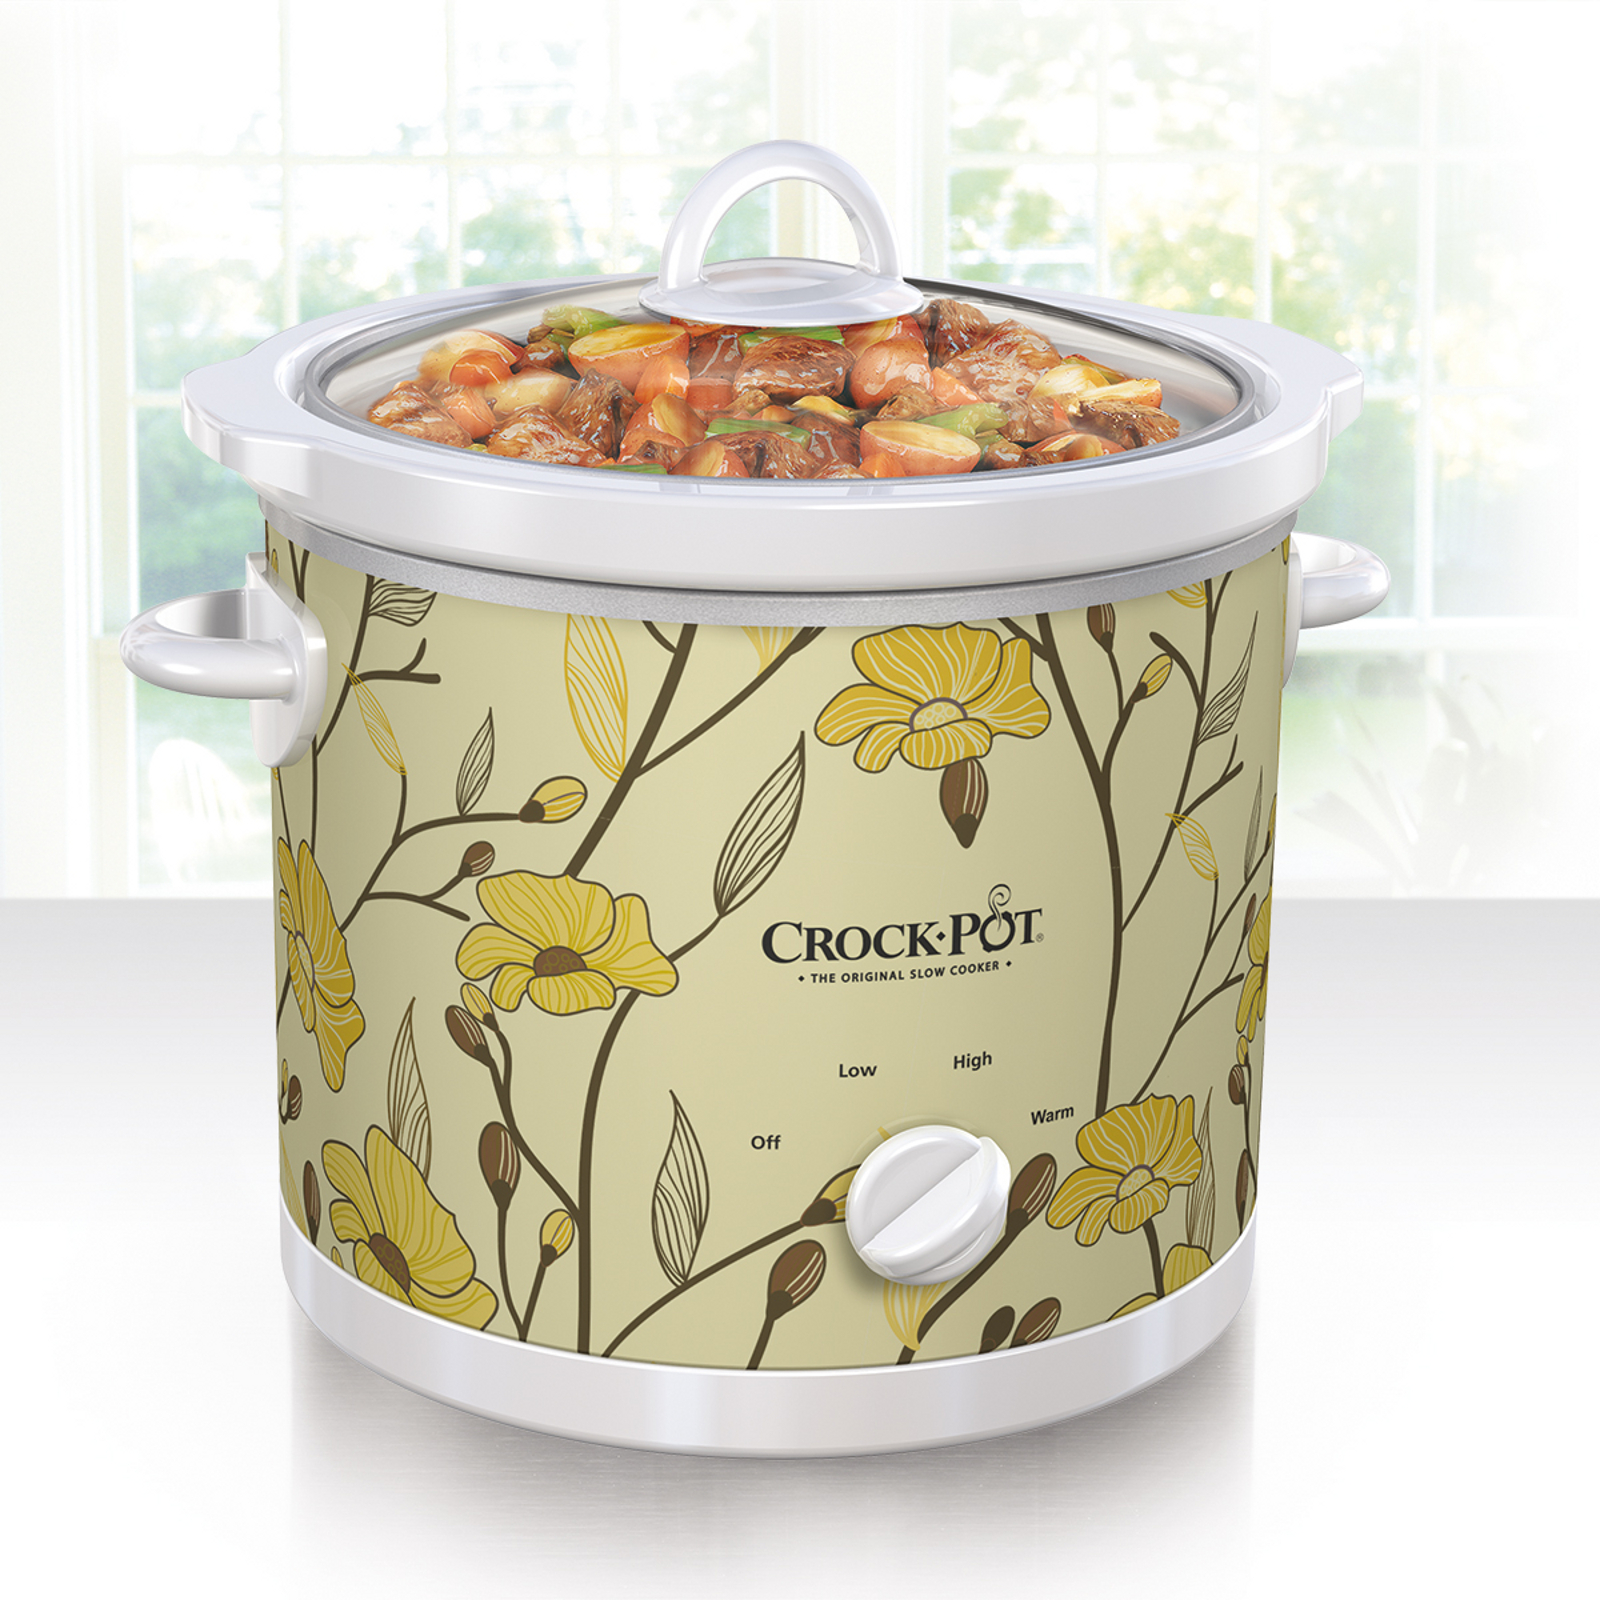 Crock Pot 3 Qt Manual Slow Cooker, Yellow Flower